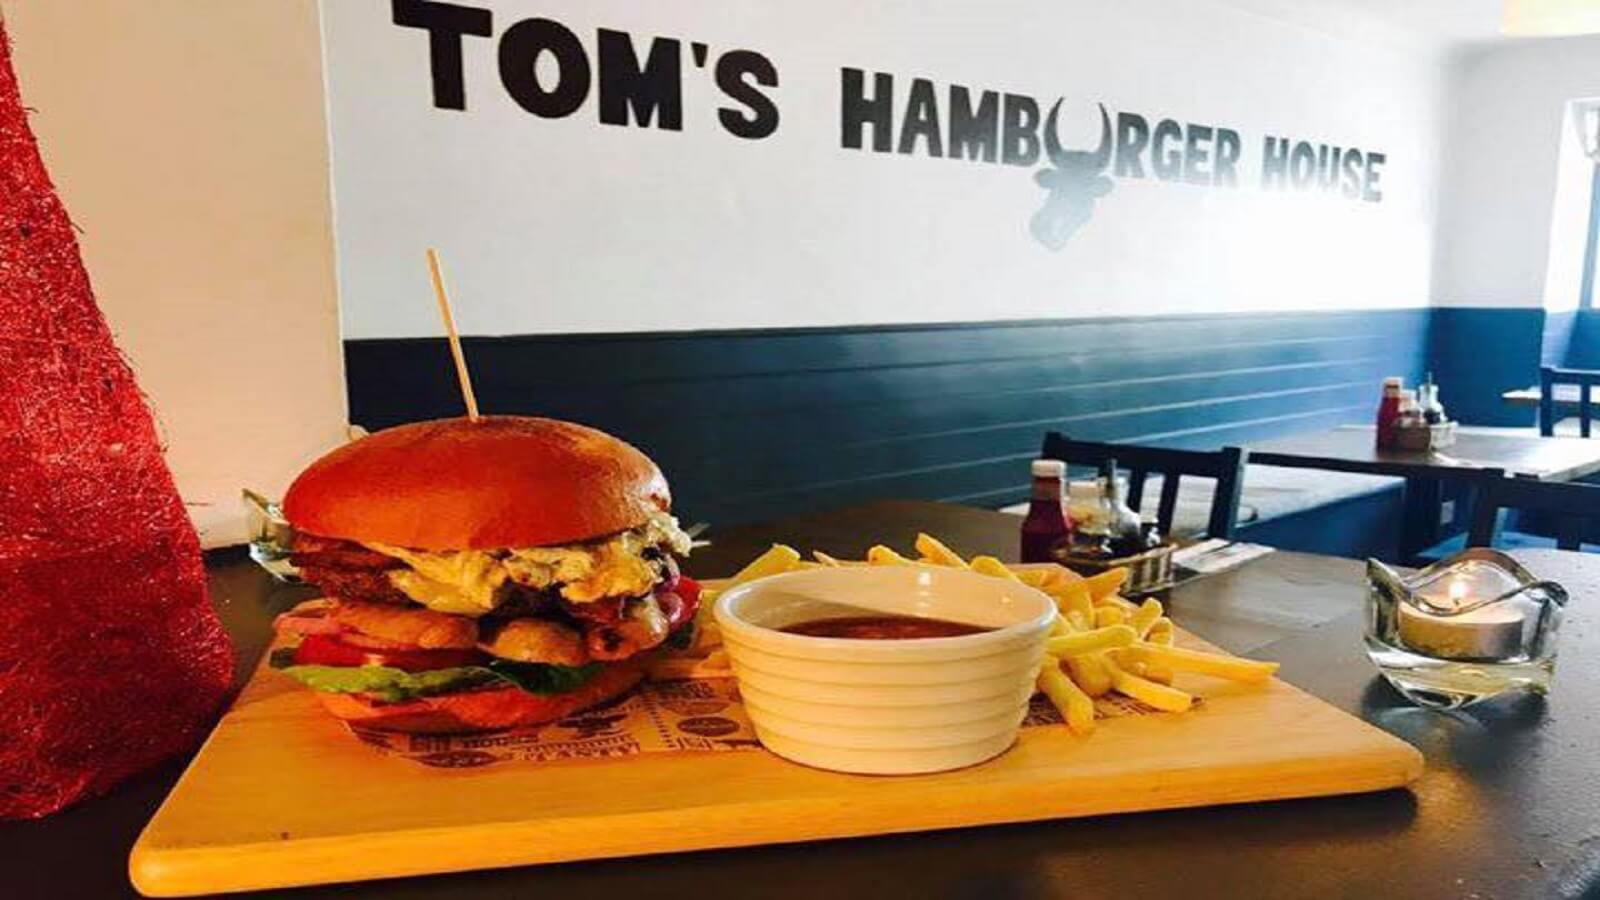 Tom's Hamburger House